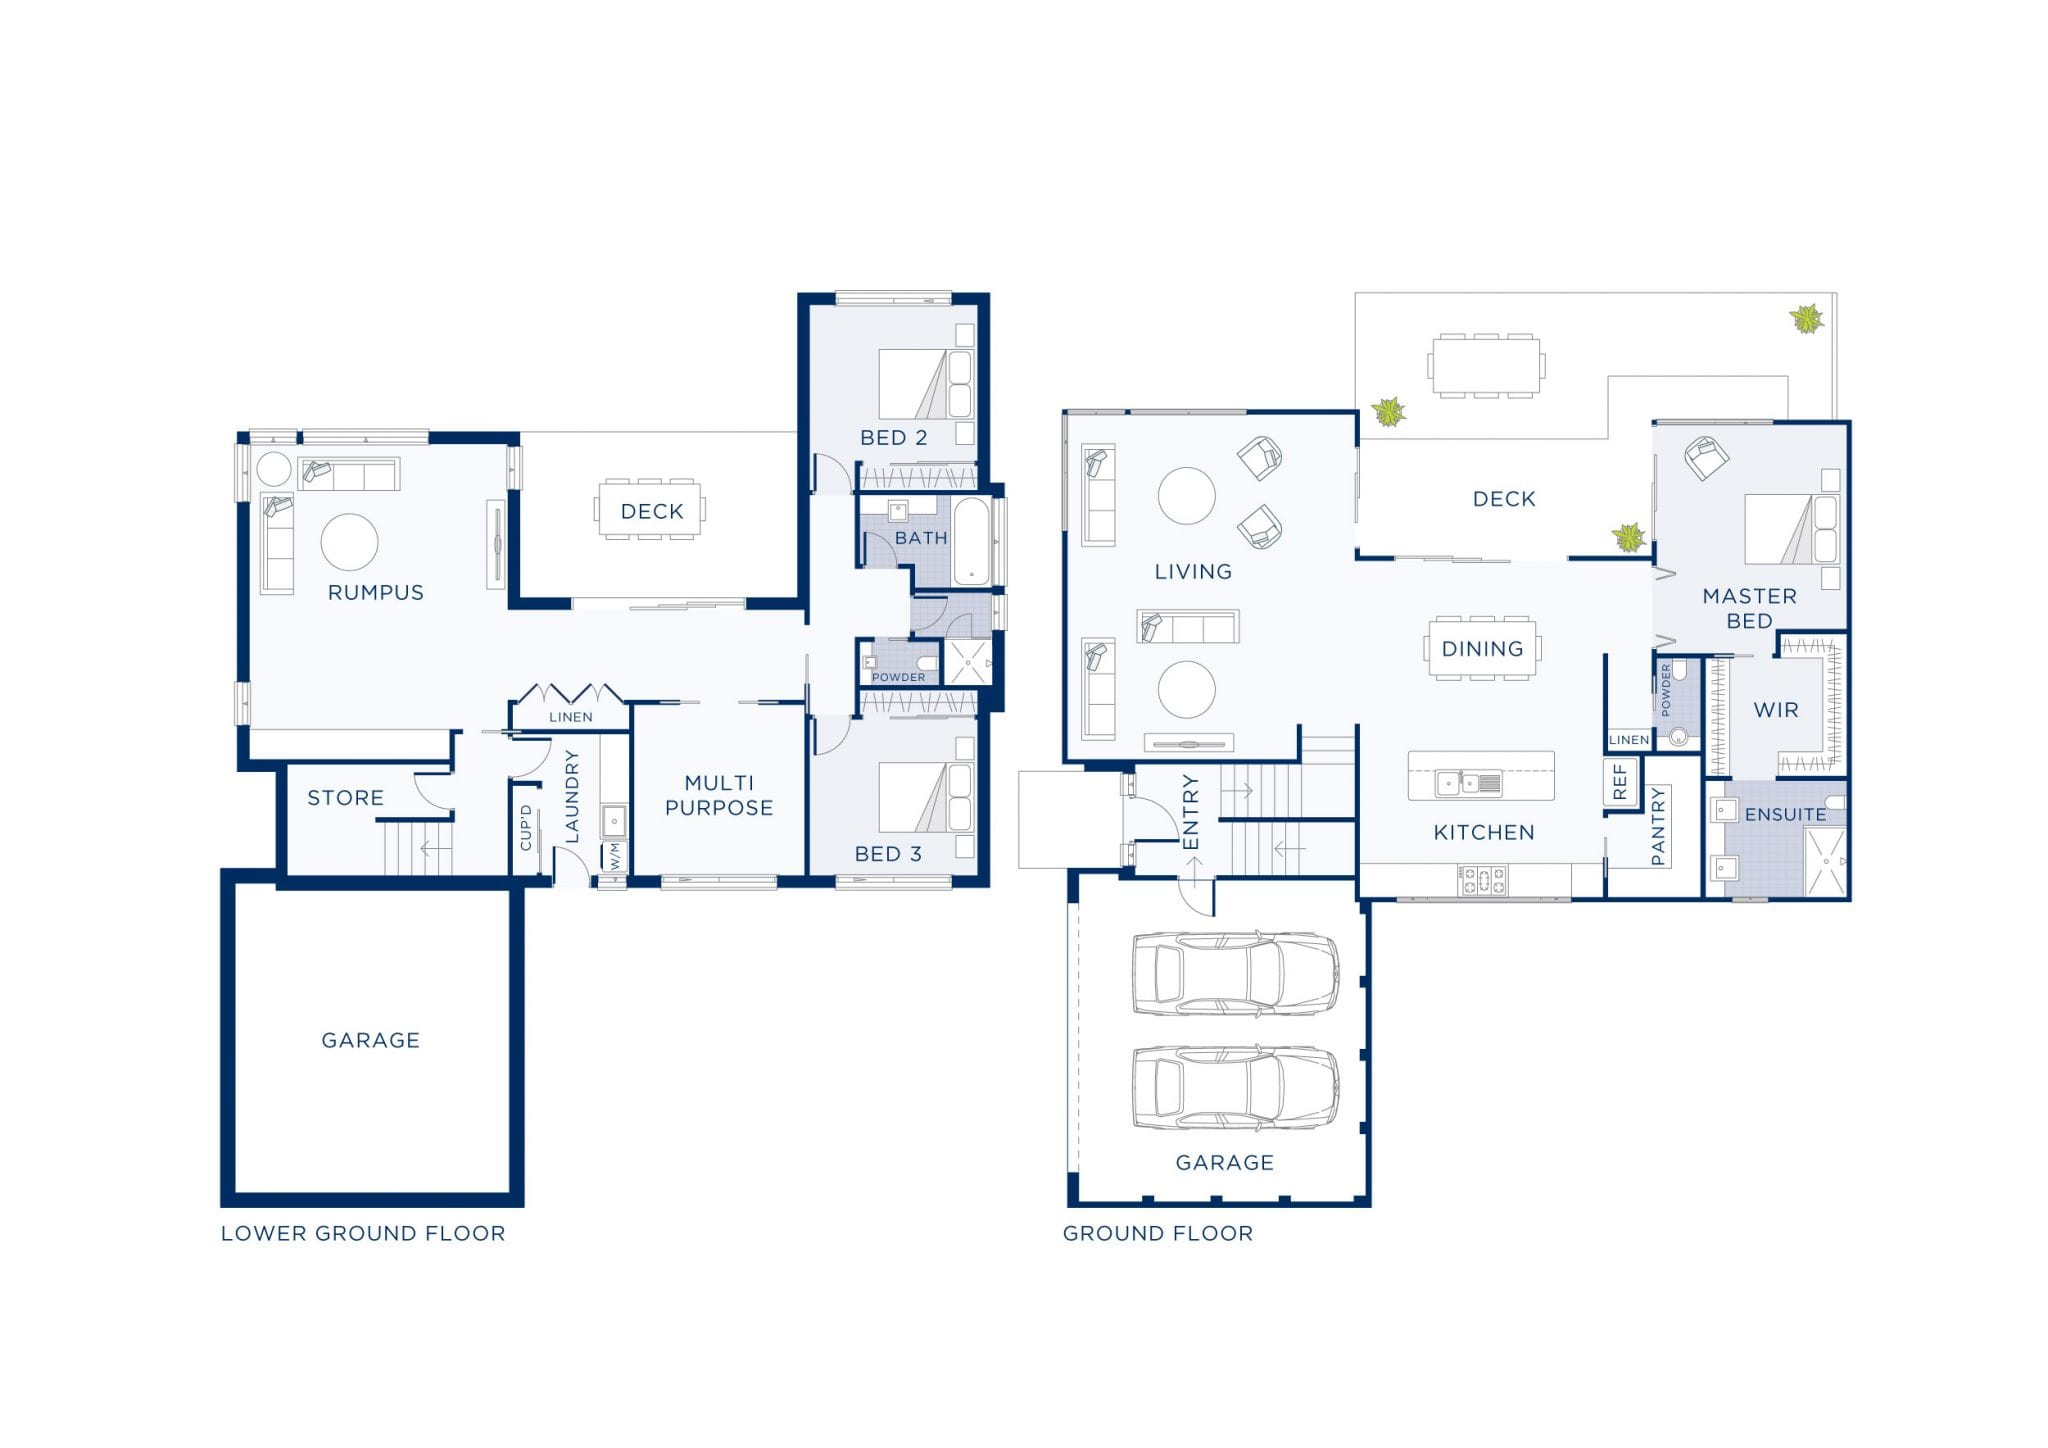 Plan of double storey home built at Calista